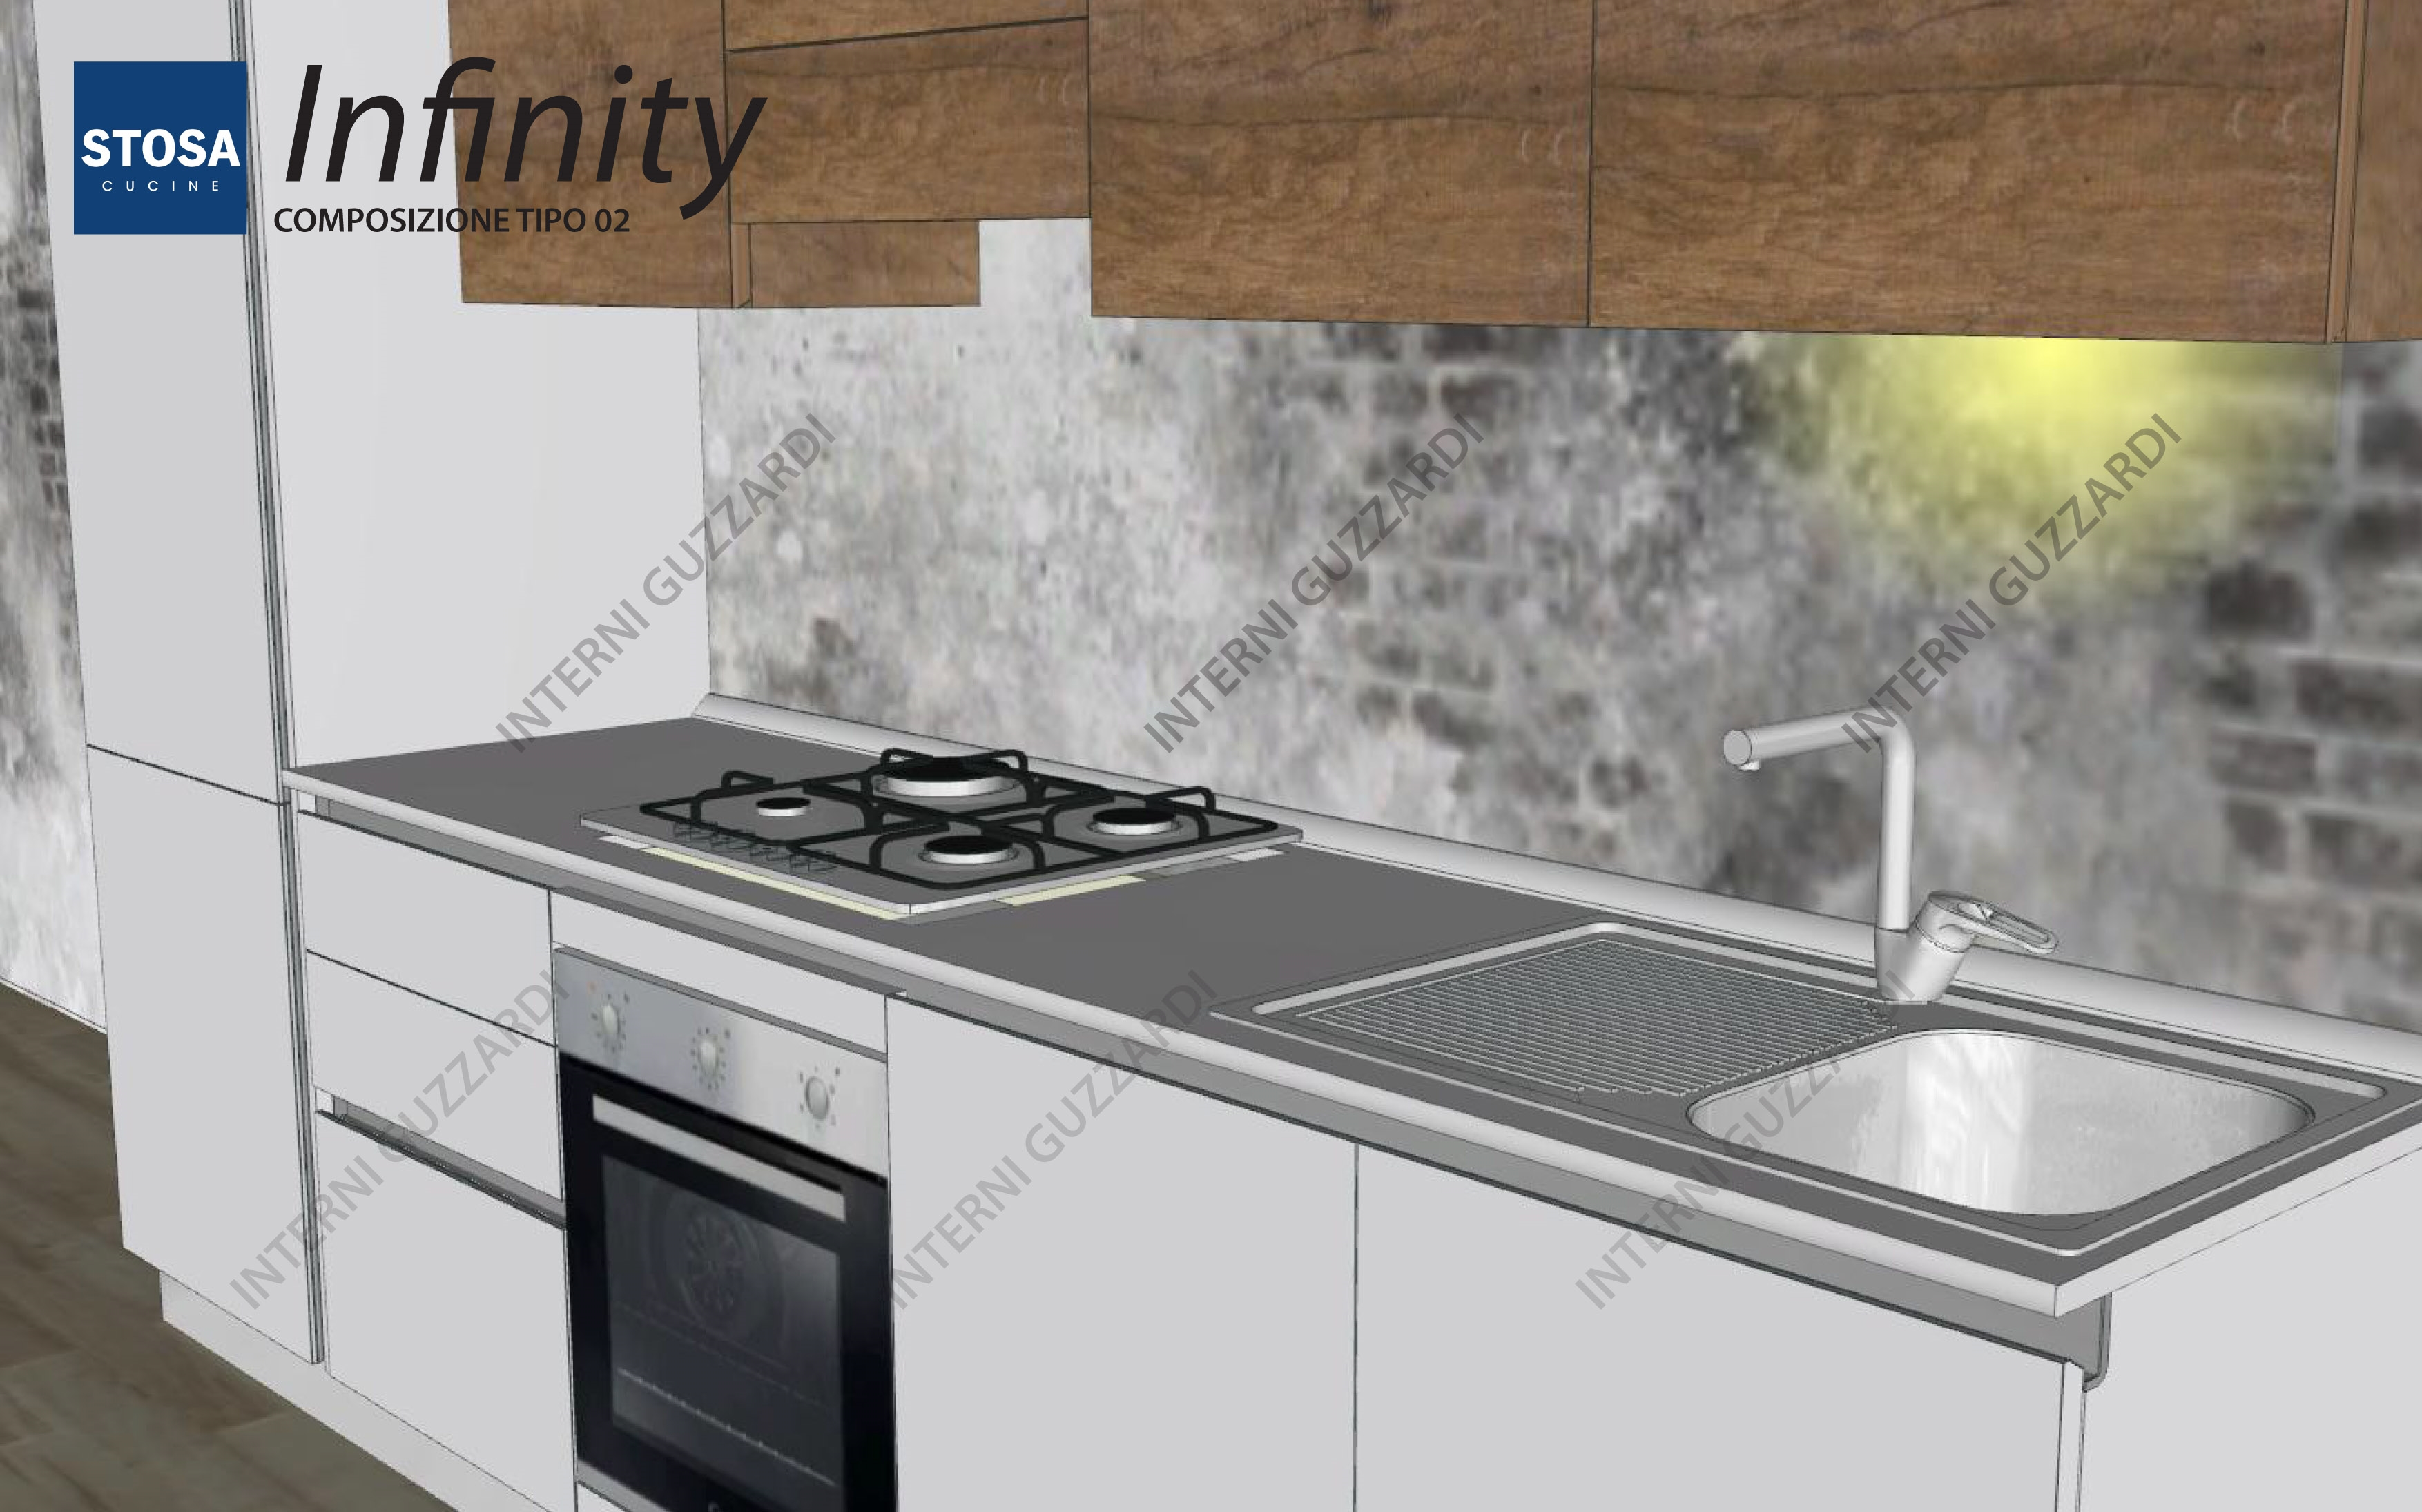 Beautiful infinity quanto costa pictures for Quanto costa una cucina scavolini